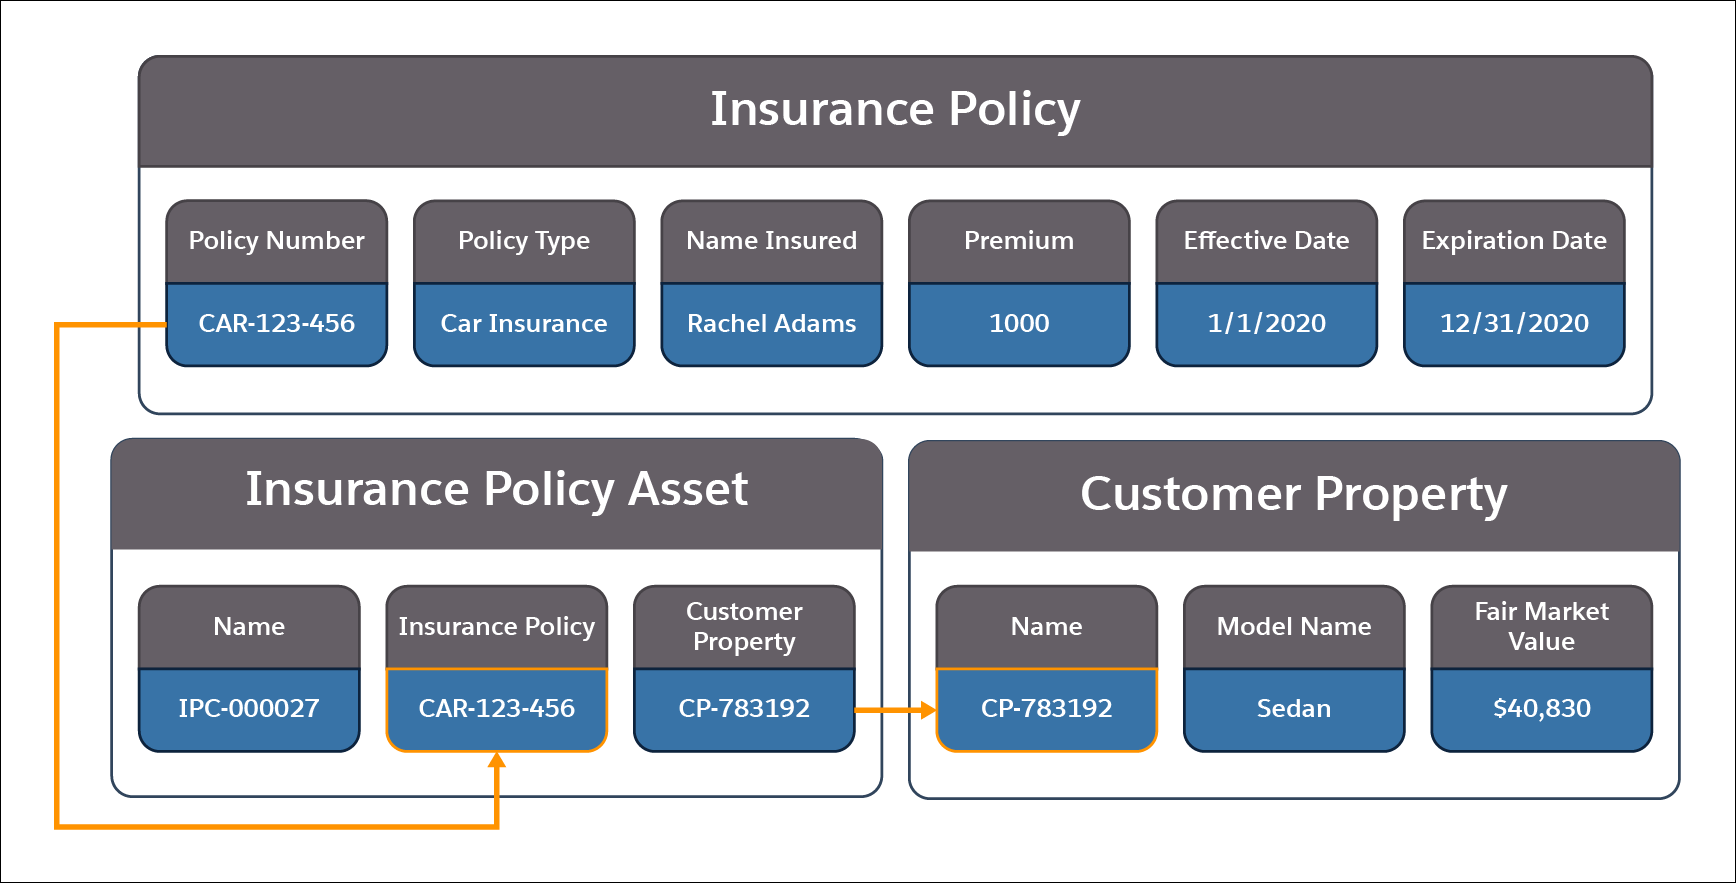 A picture showing the information contained in the Insurance Policy, Insurance Policy Asset, and Customer Property objects and how they relate to each other.